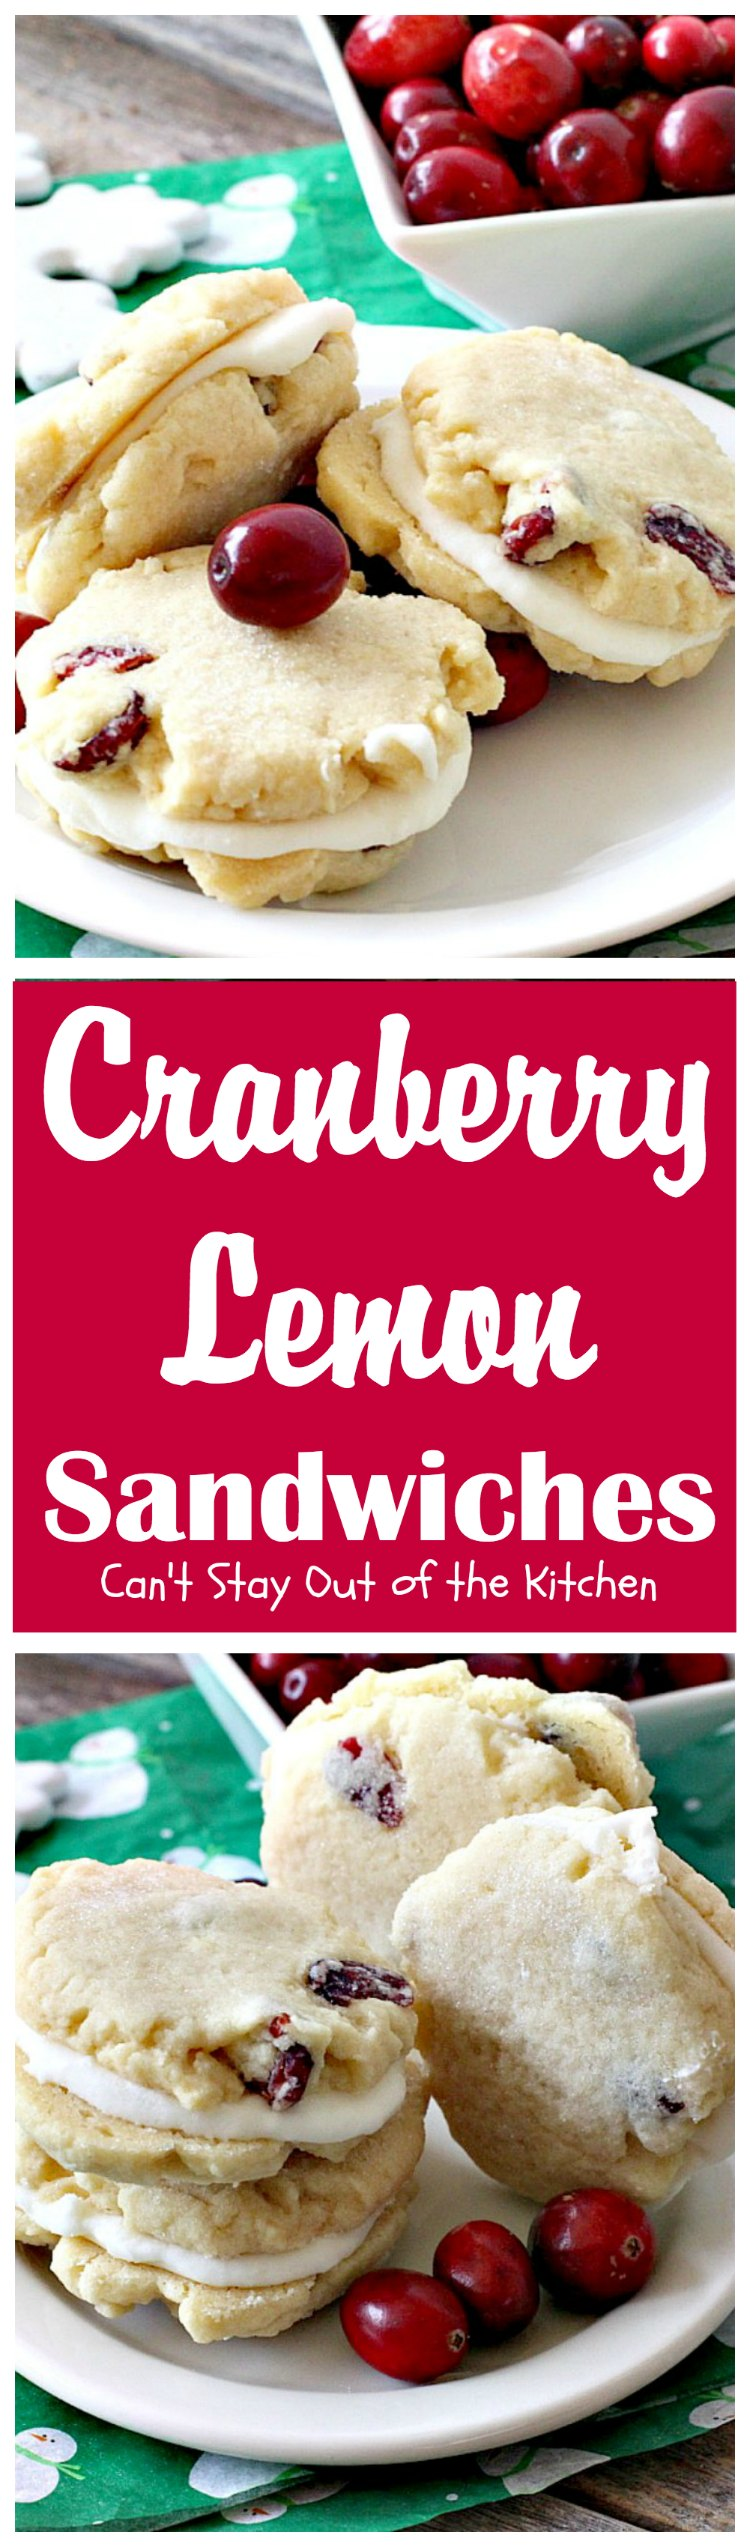 Cranberry Lemon Sandwiches   Can't Stay Out of the Kitchen